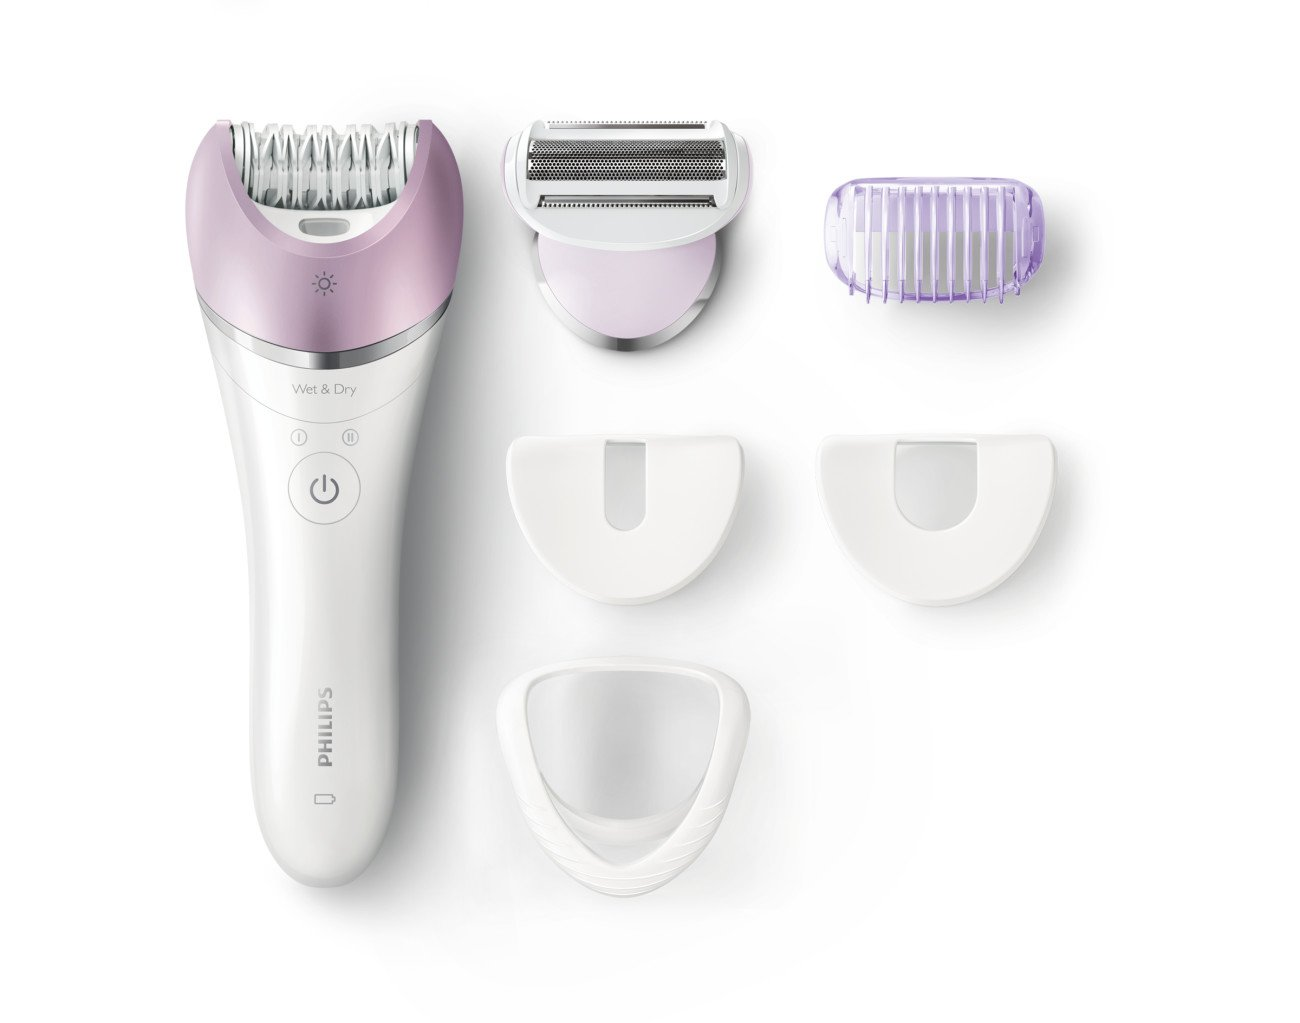 Philips Satinelle Advanced Epilator, Electric Hair Removal, Cordless Wet & Dry Use, (BRE635) by Philips Beauty